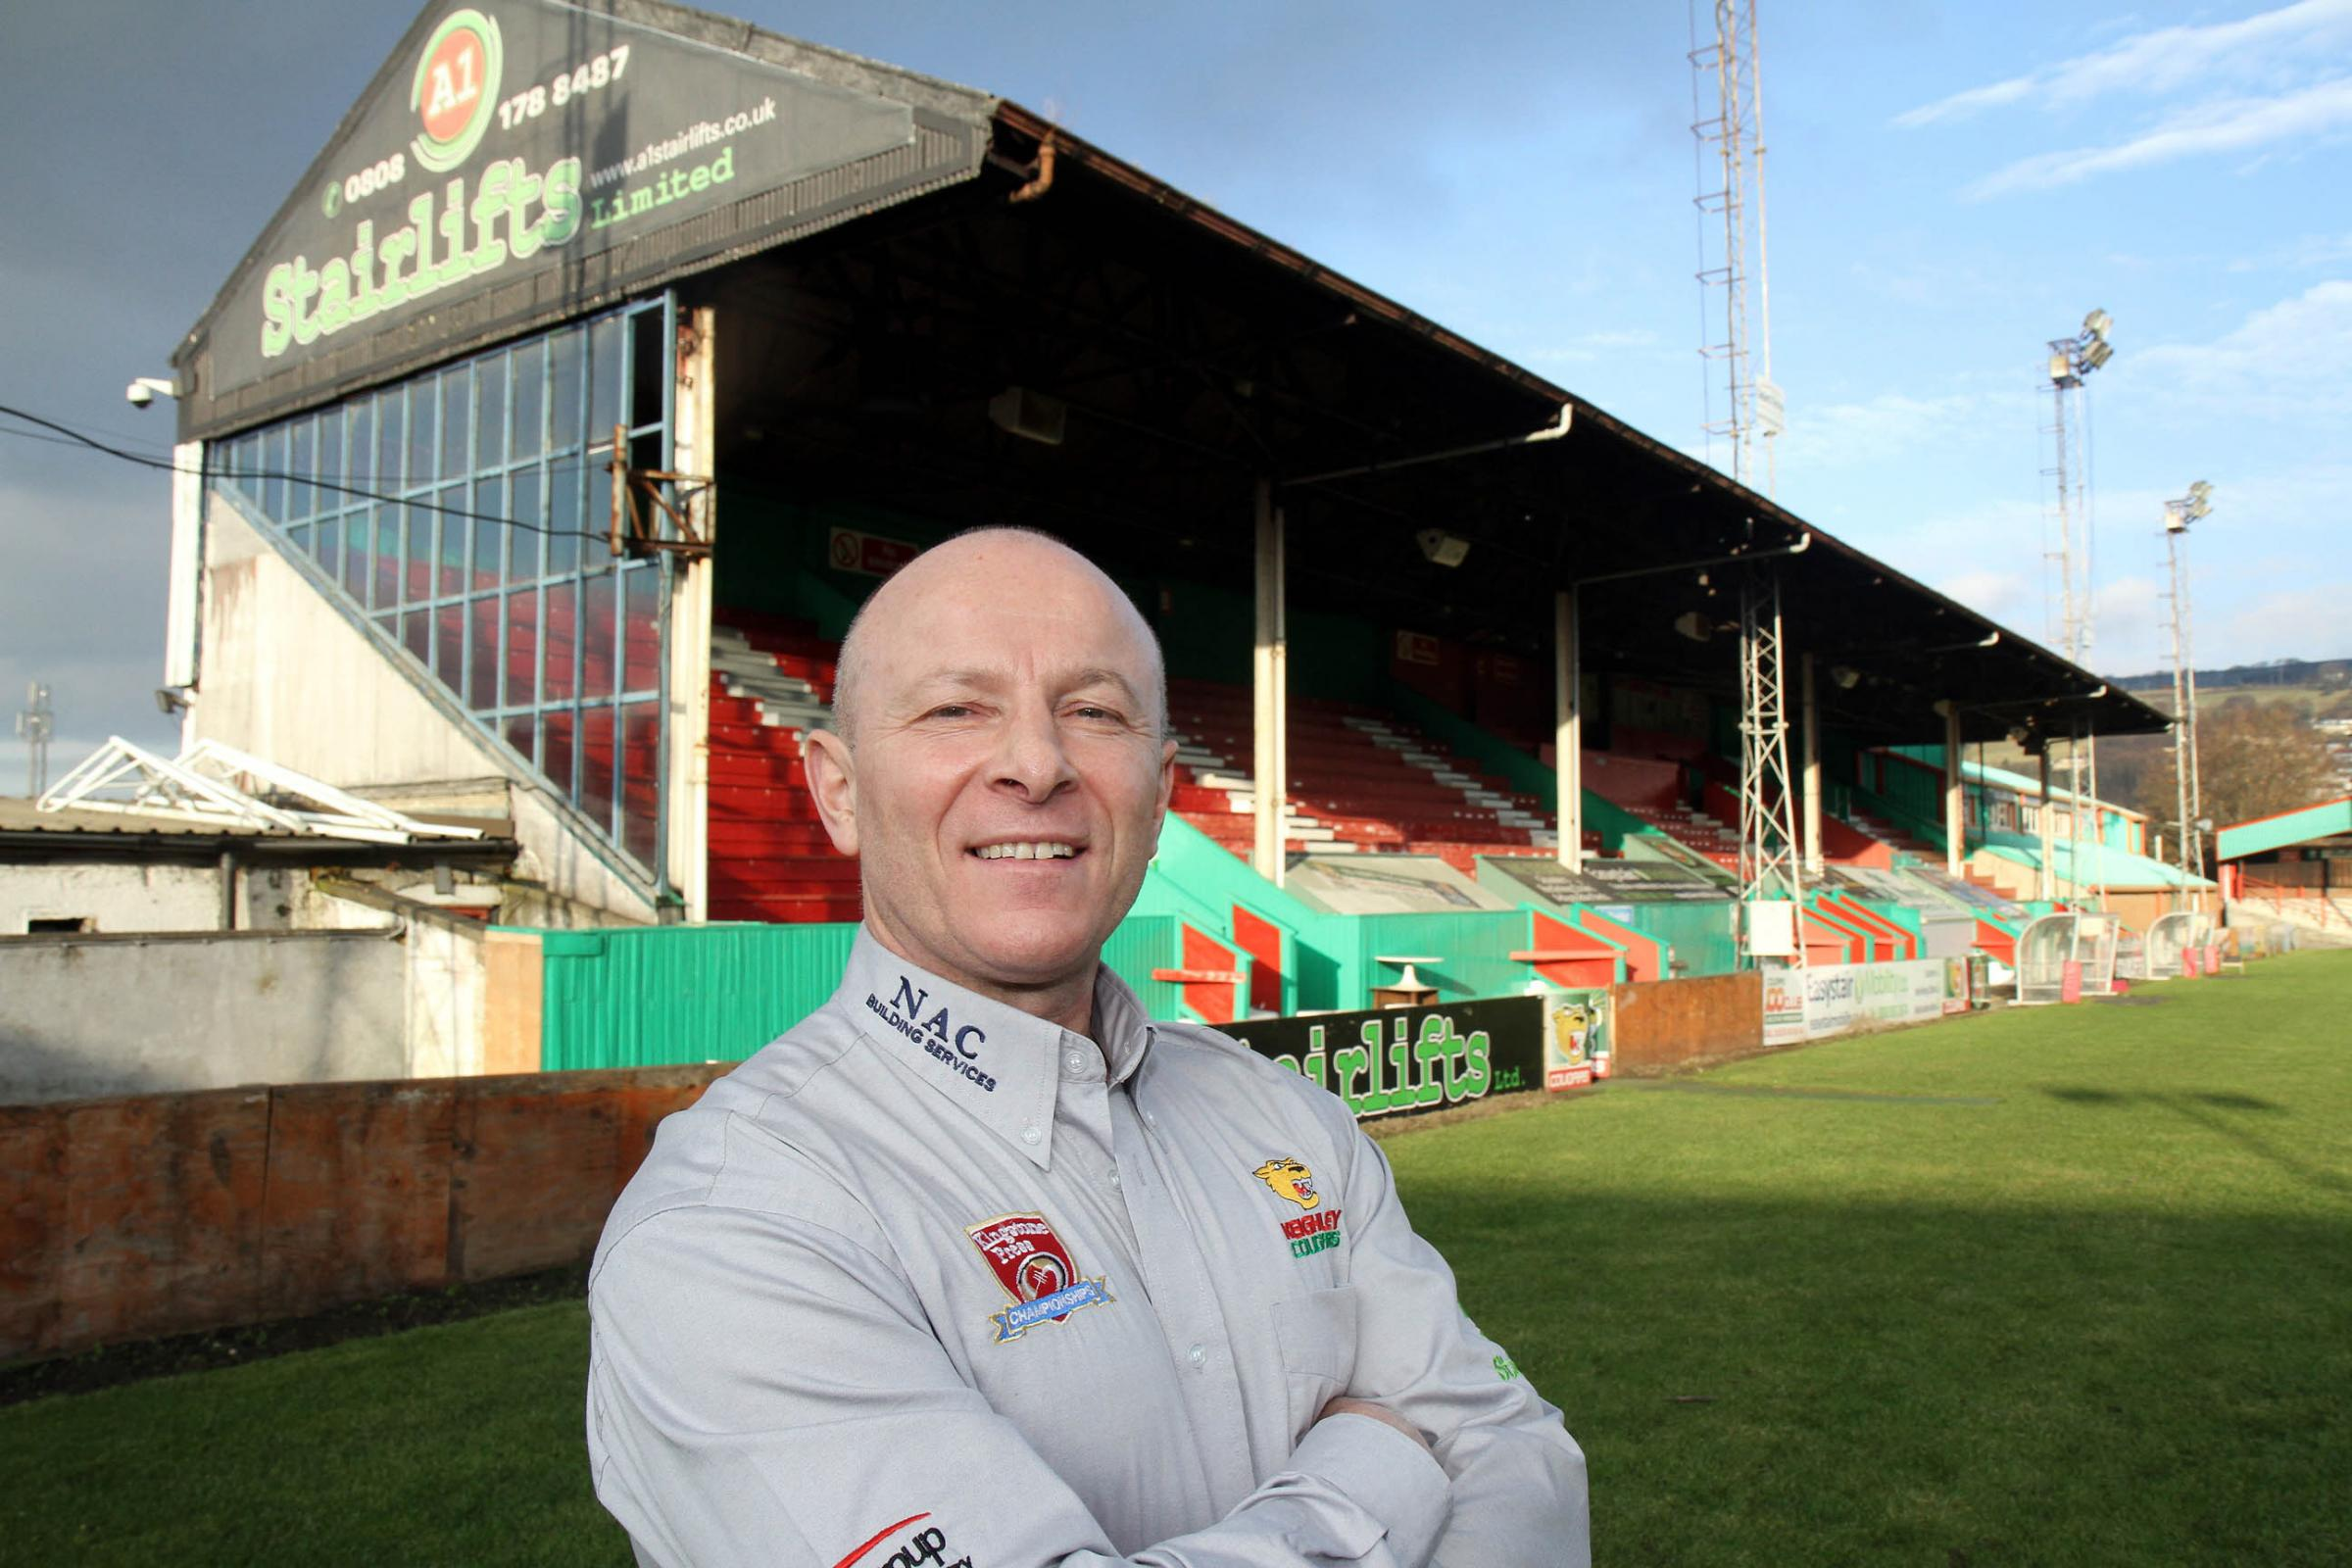 Gary Fawcett has announced he is quitting as chairman and director of Keighley Cougars